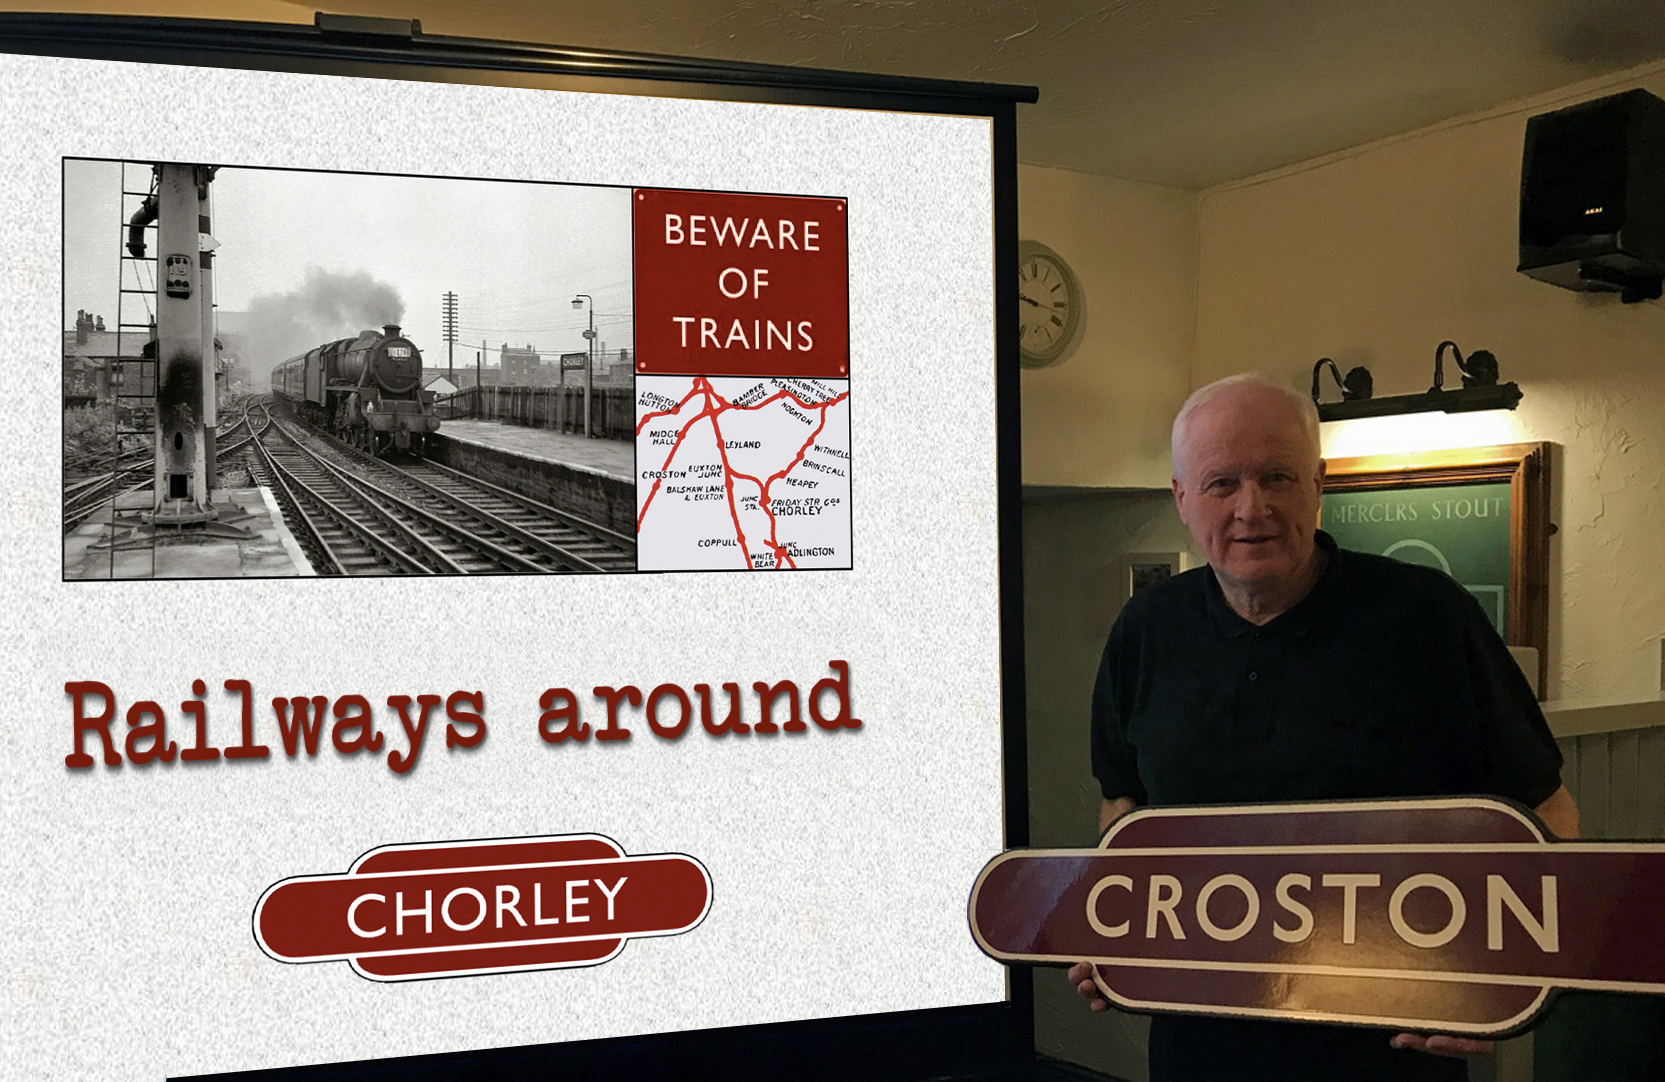 Steve presenting his railway talk